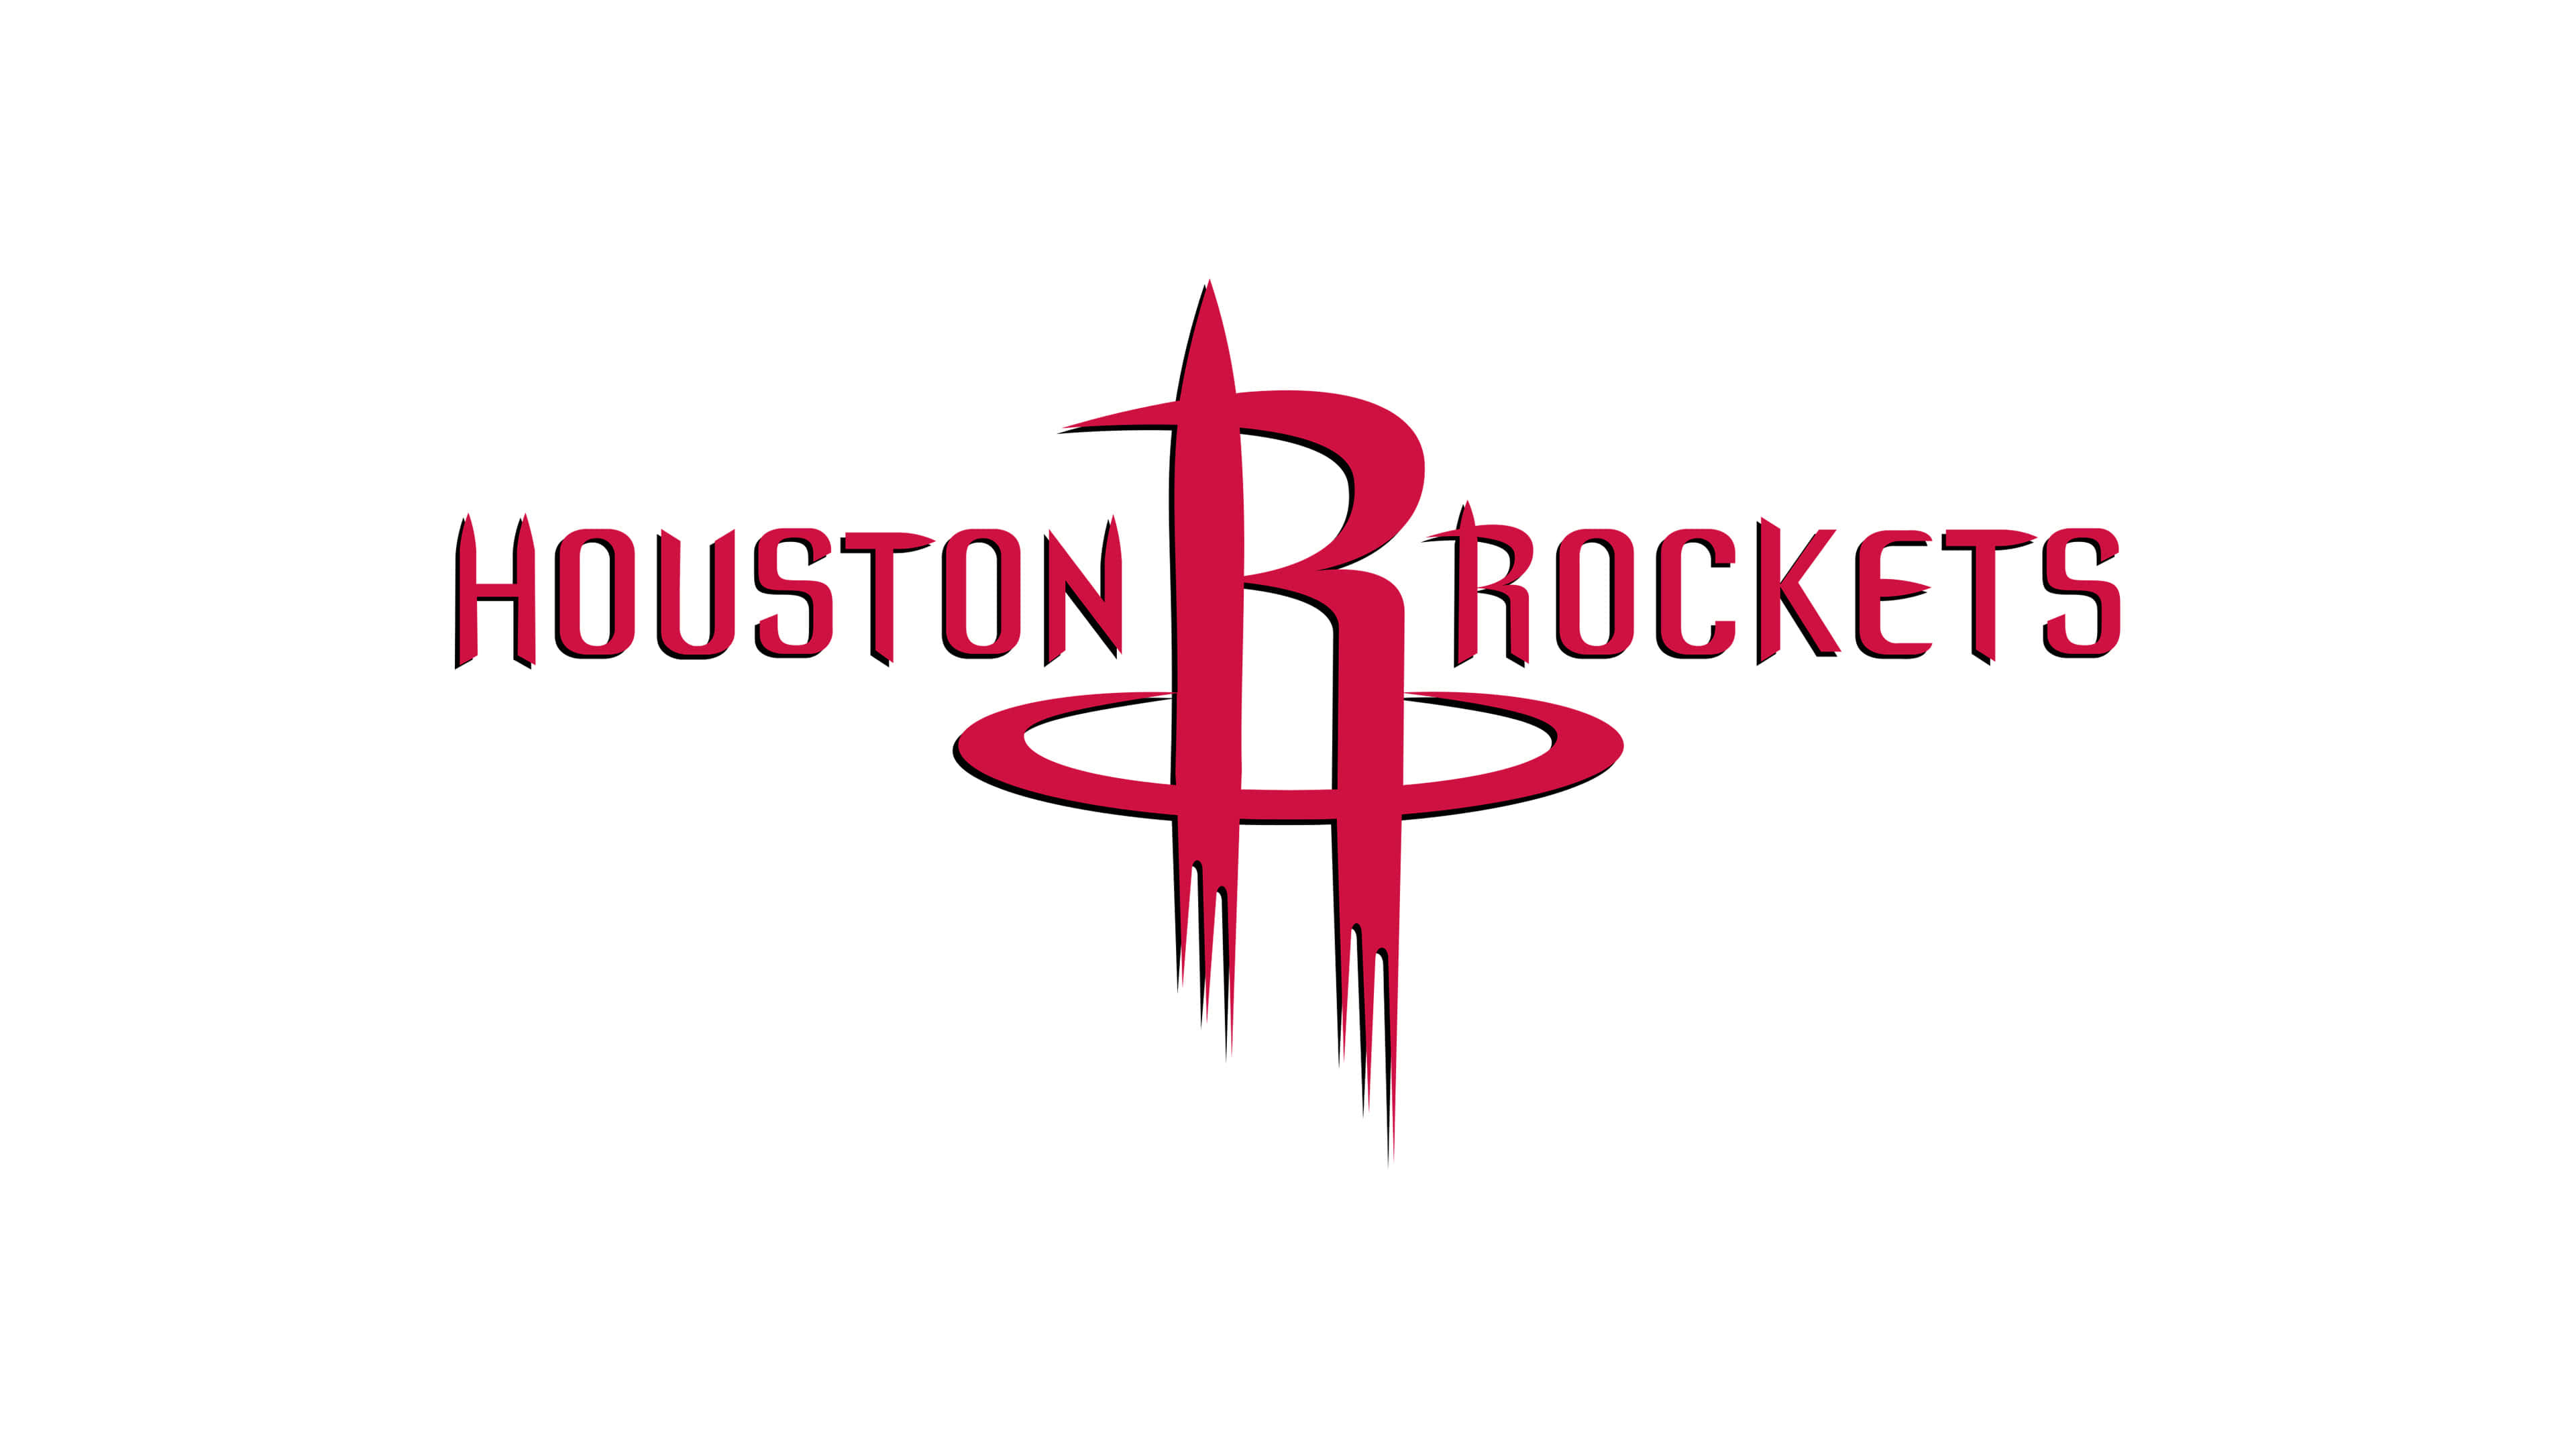 houston rockets nba logo uhd 4k wallpaper